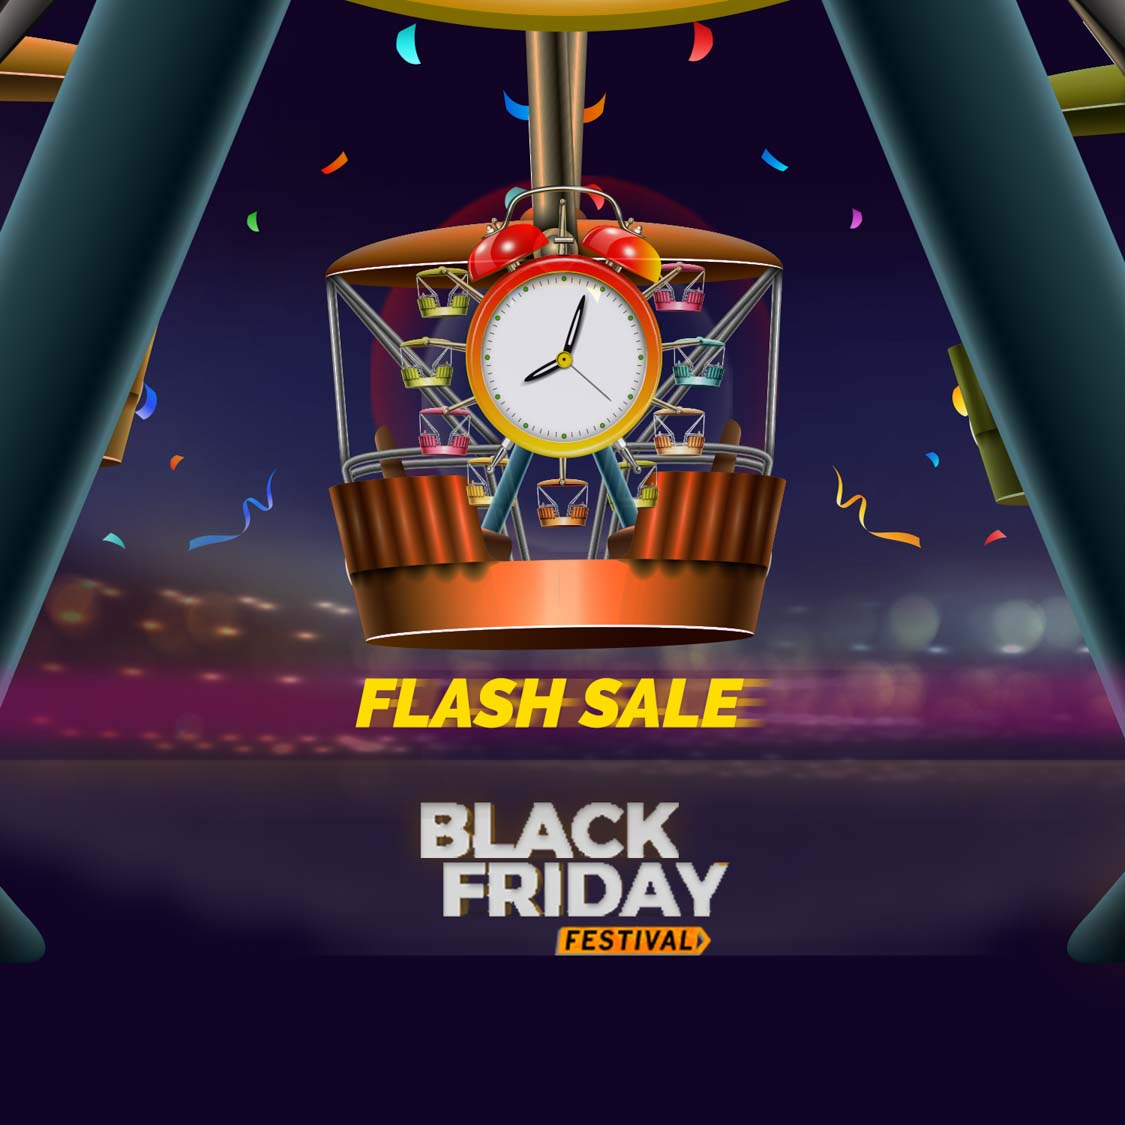 Jumia's Black Friday ends in 2 Days: Here is how to win with Flash Sales